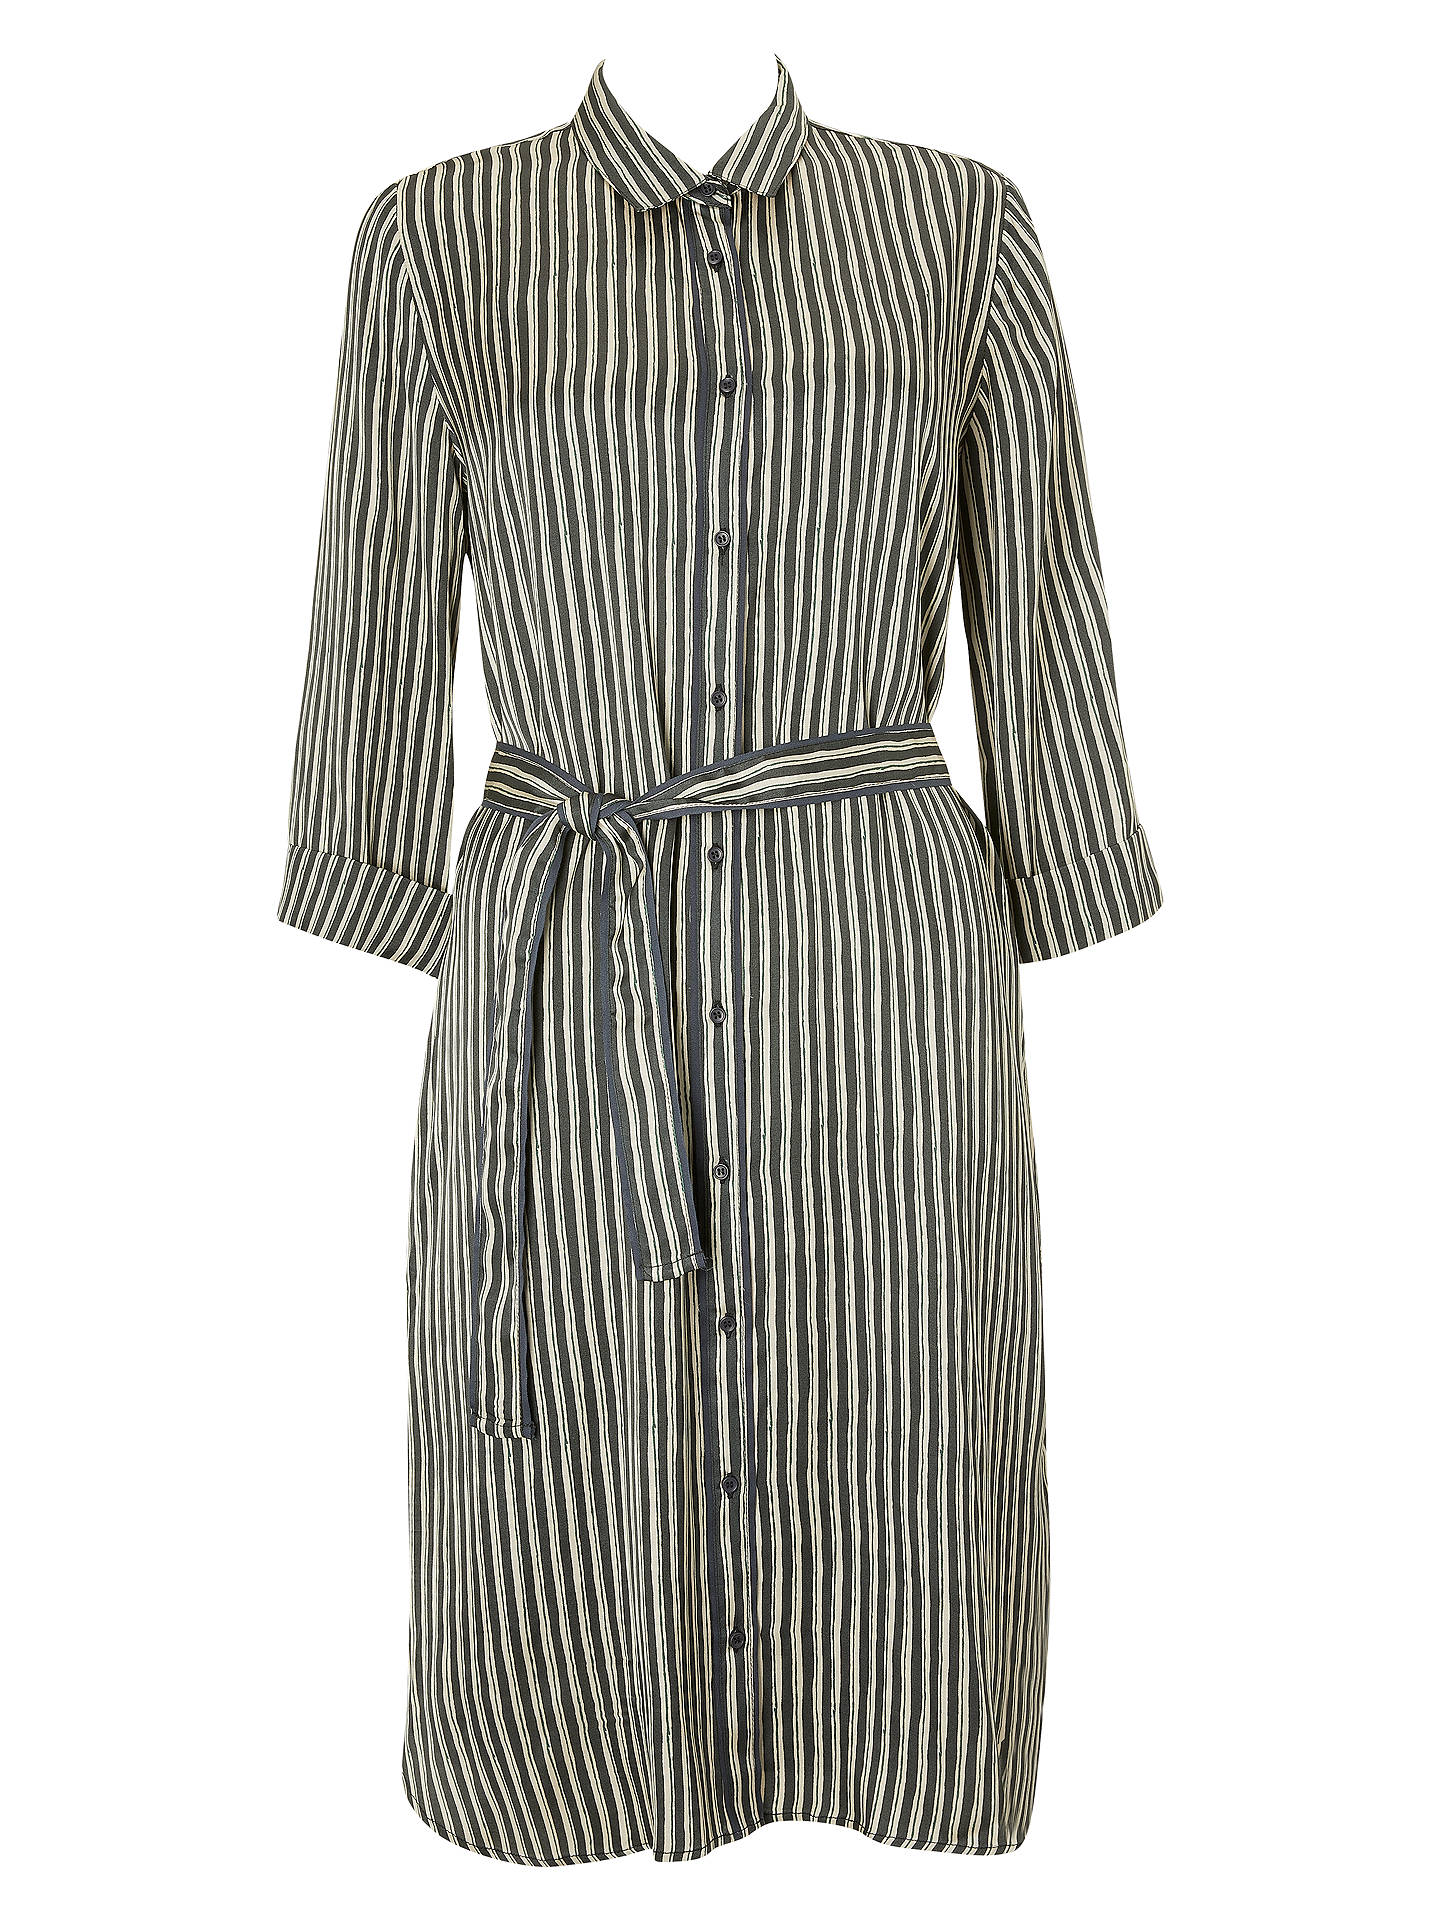 BuySwildens Saturne Stripe Dress, Faux Noir, 8 Online at johnlewis.com